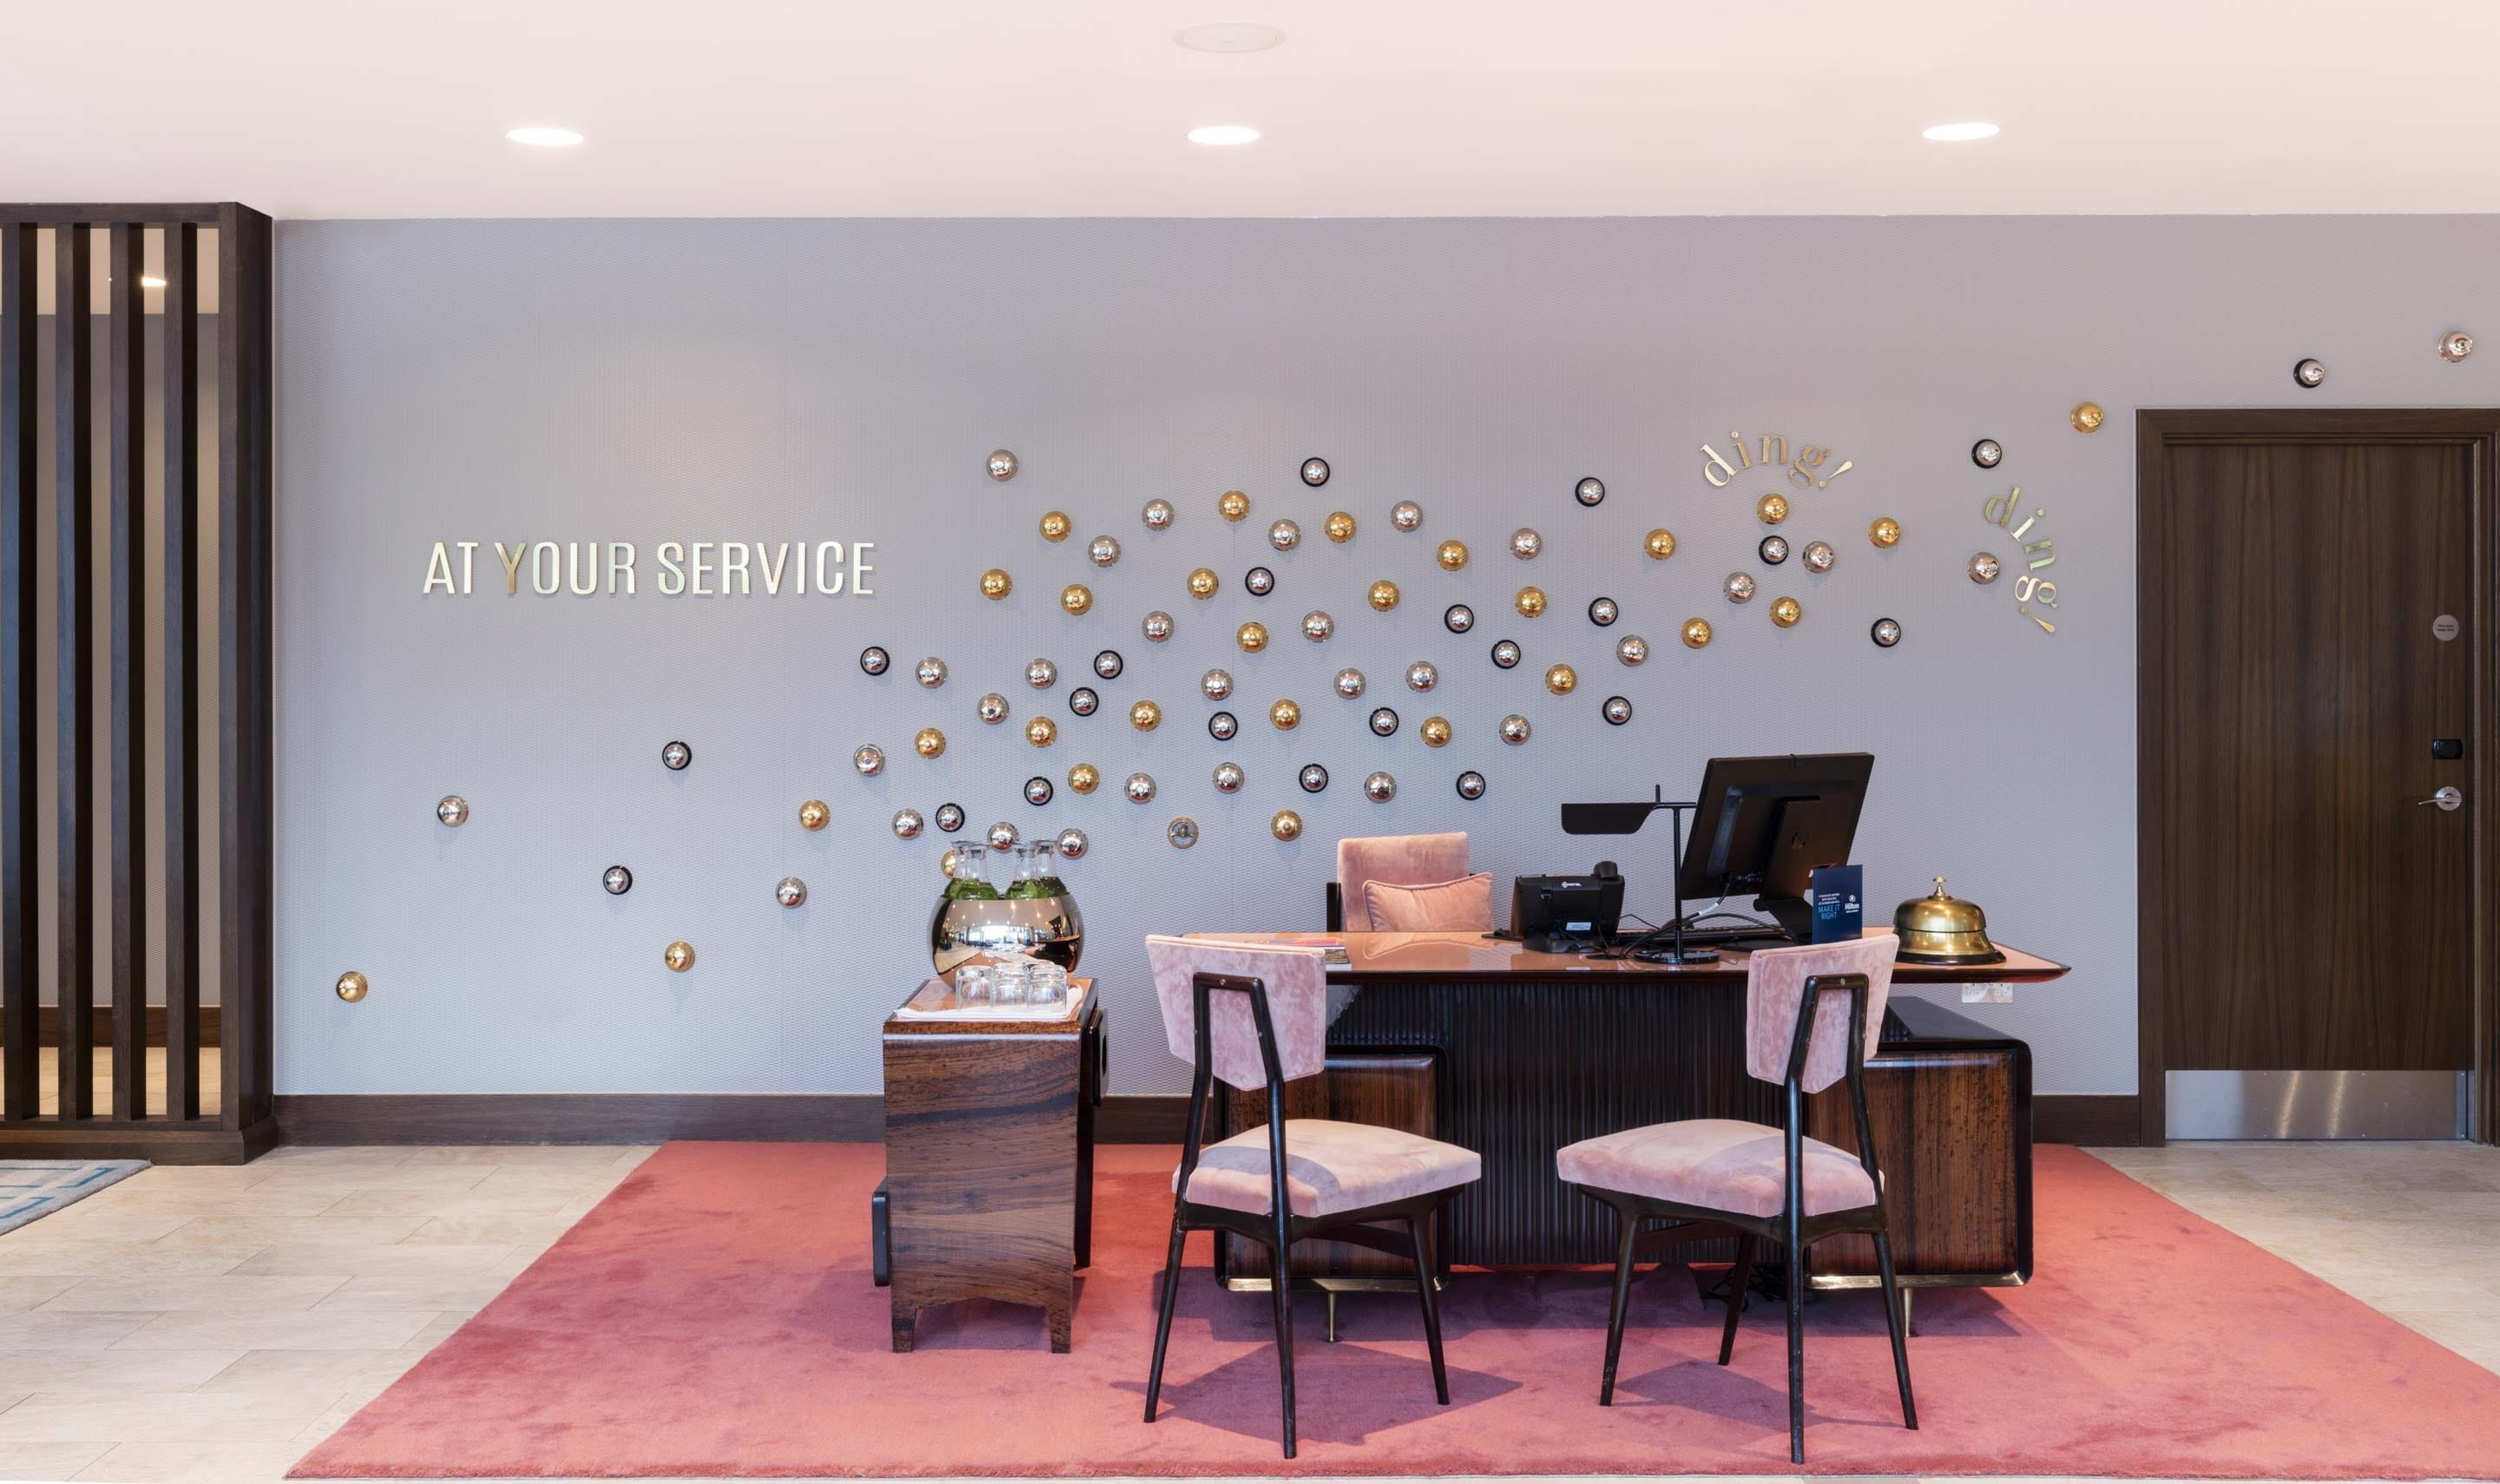 Hilton Bournemouth – Concierge and hospitality desk